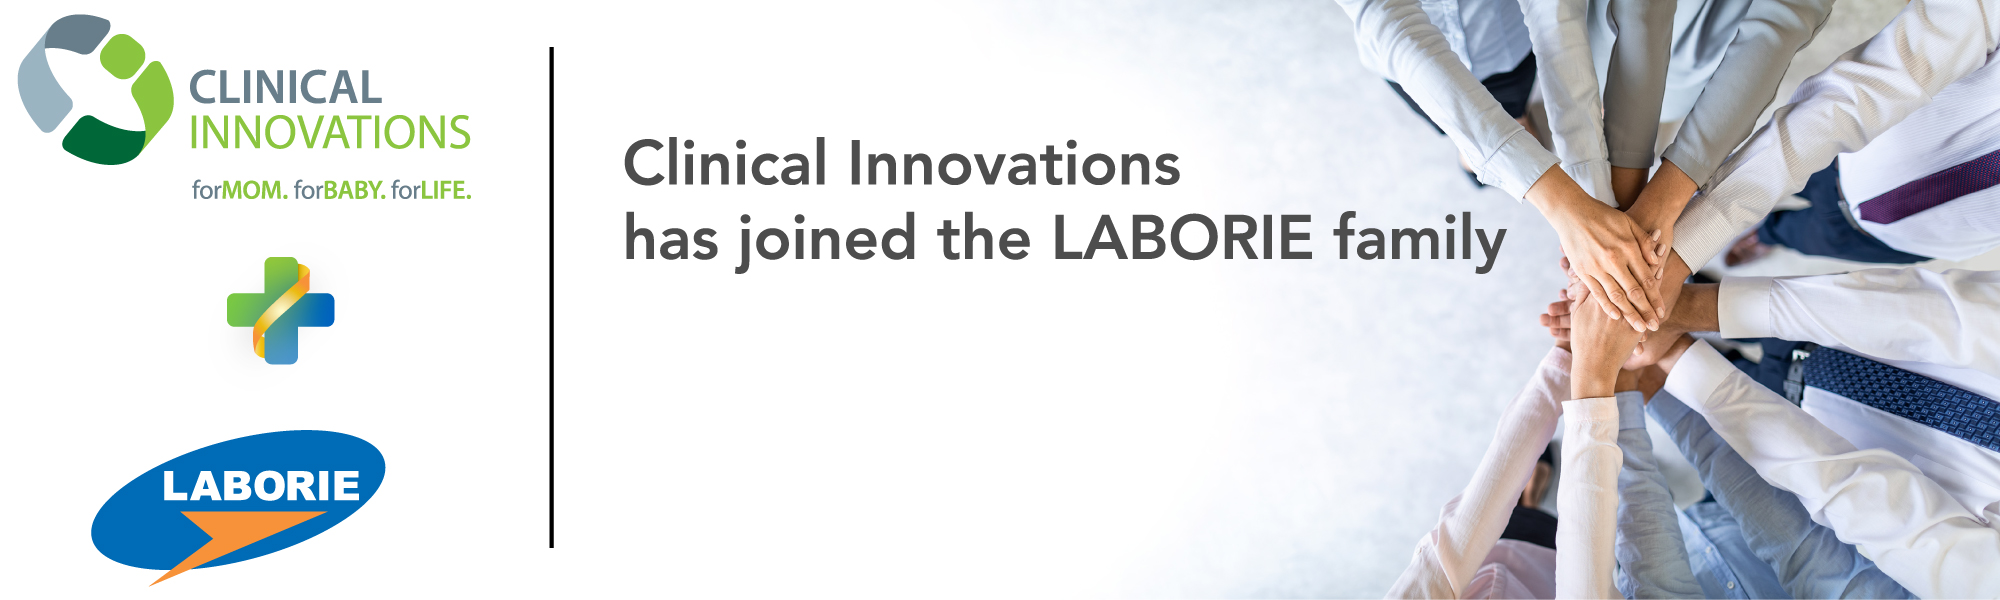 Clinical Innovations Has Joined the LABORIE Family